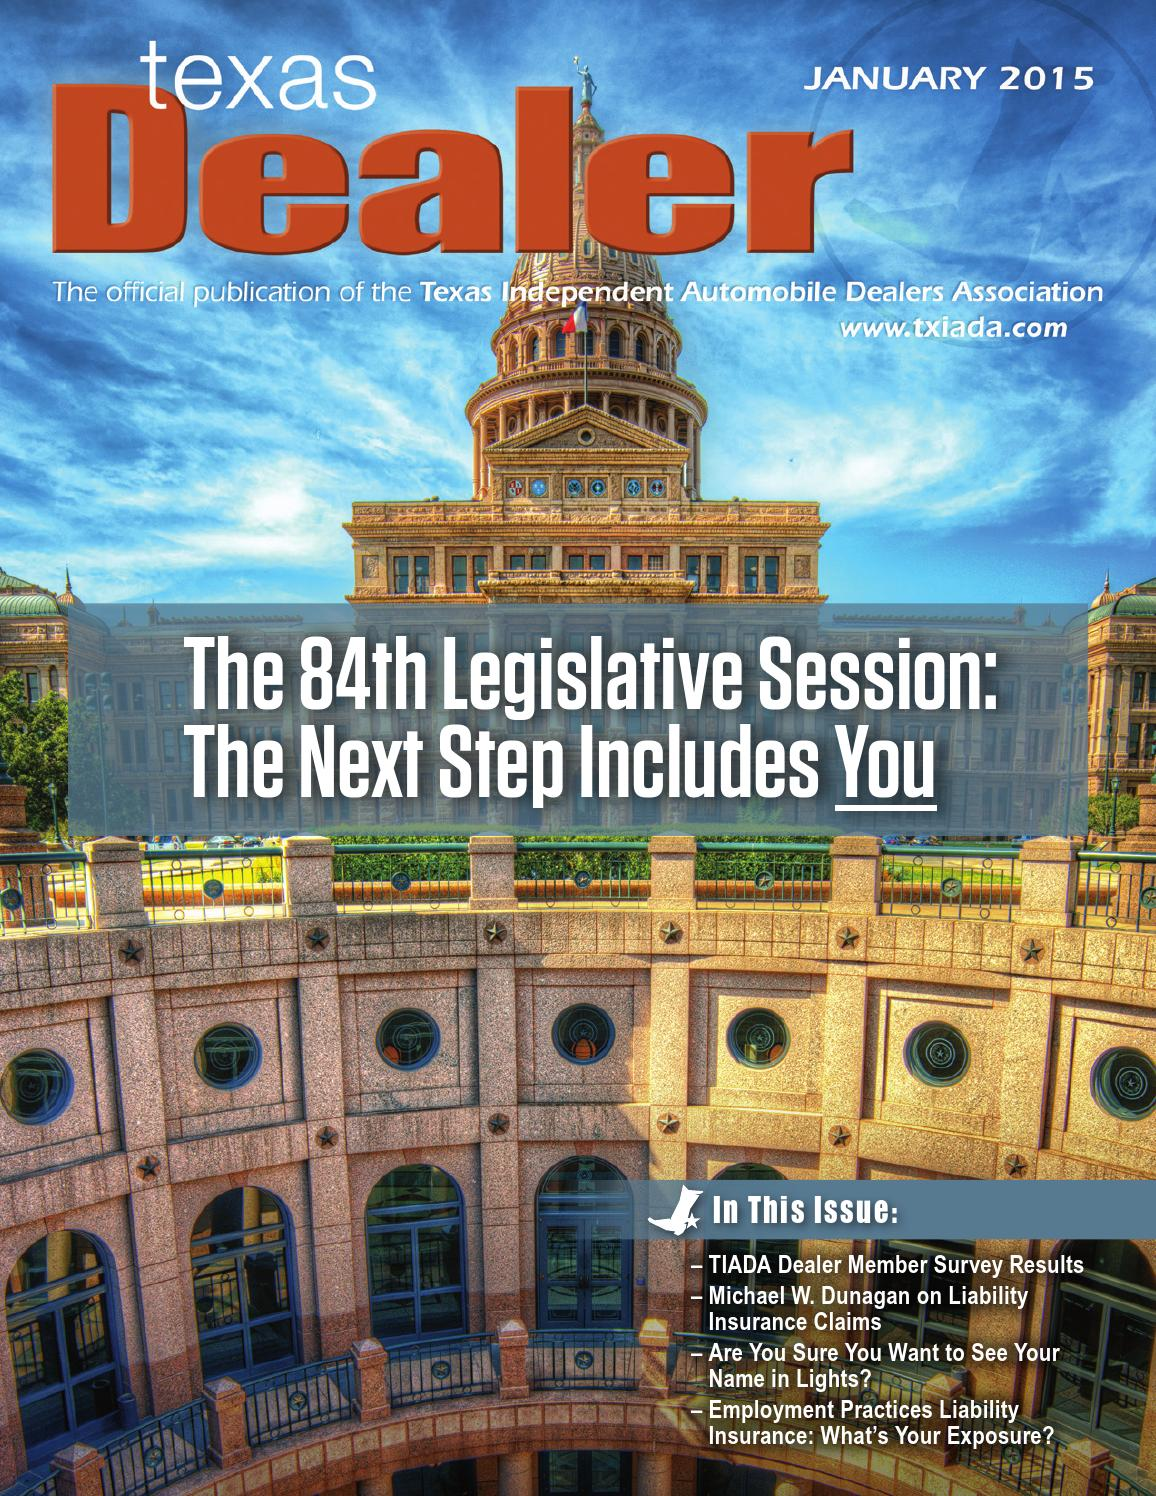 texas dealer by texas independent auto dealers texas dealer 2015 by texas independent auto dealers association issuu